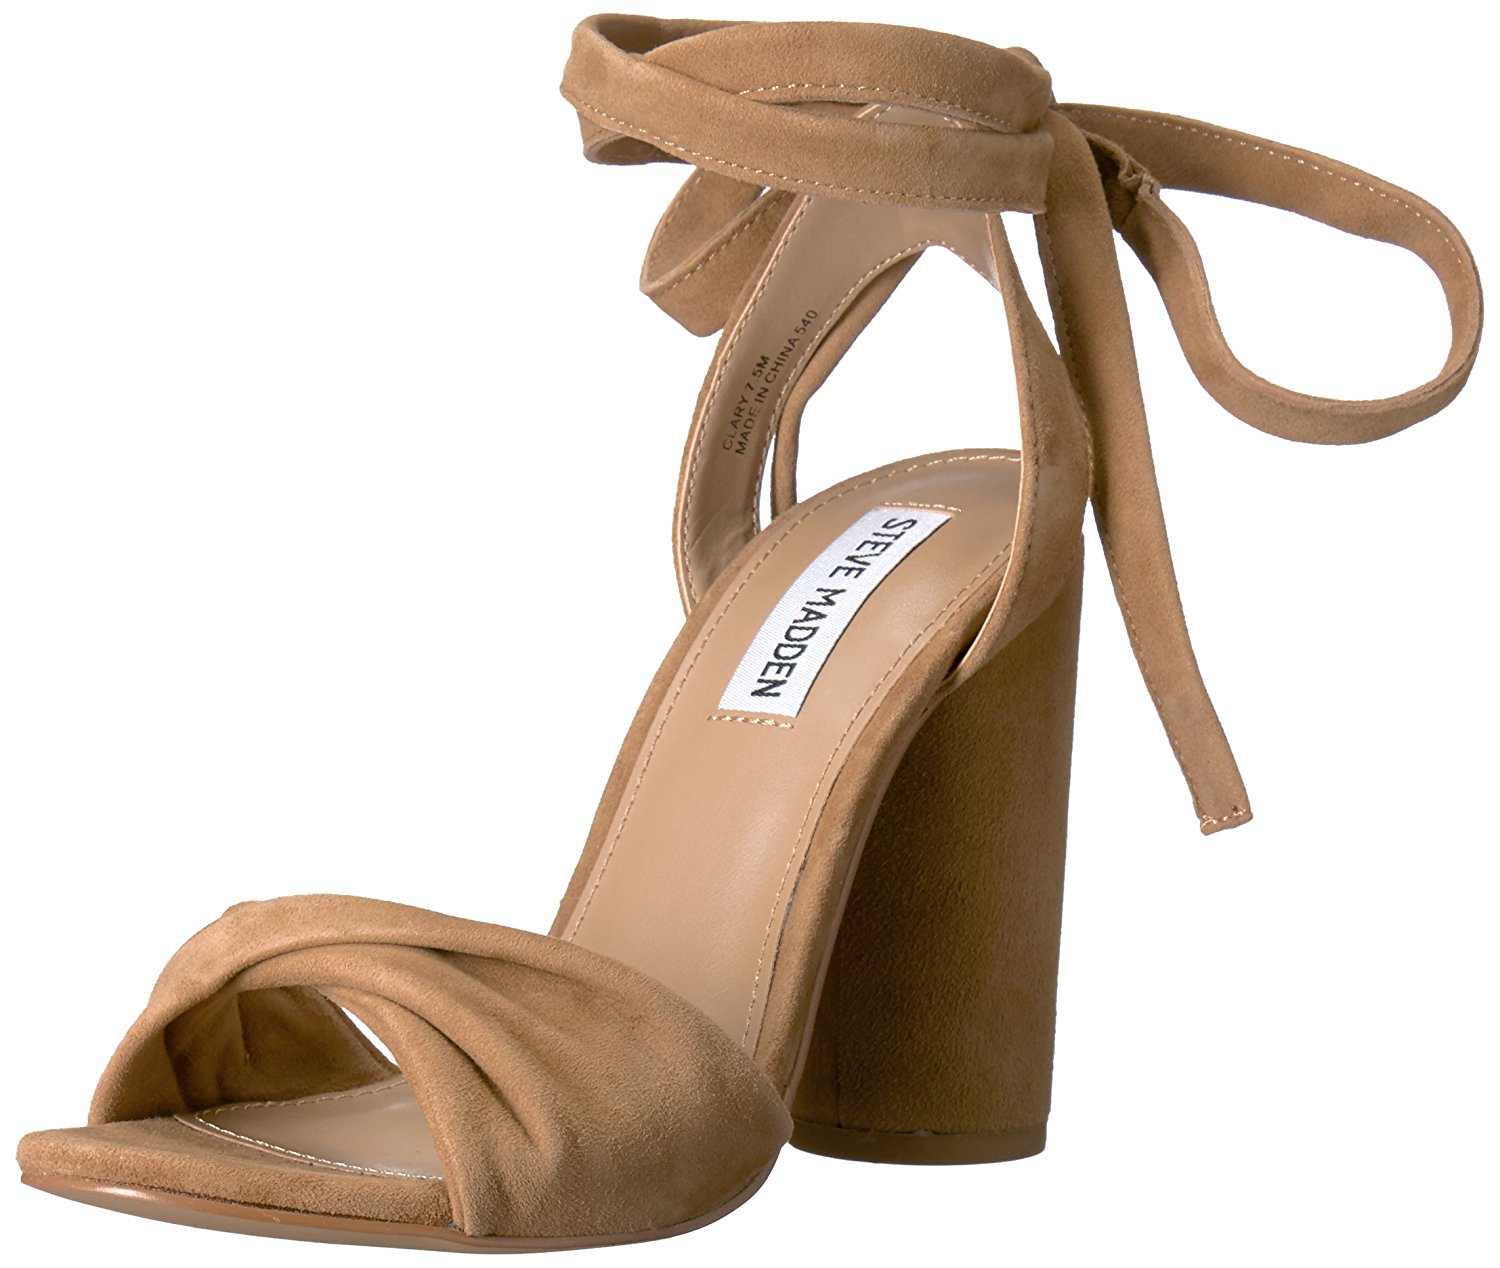 7782d8a82f0 Amazon.com | Steve Madden Women's Clary Dress Sandal, Camel Suede, 7.5 M US  | Heeled Sandals